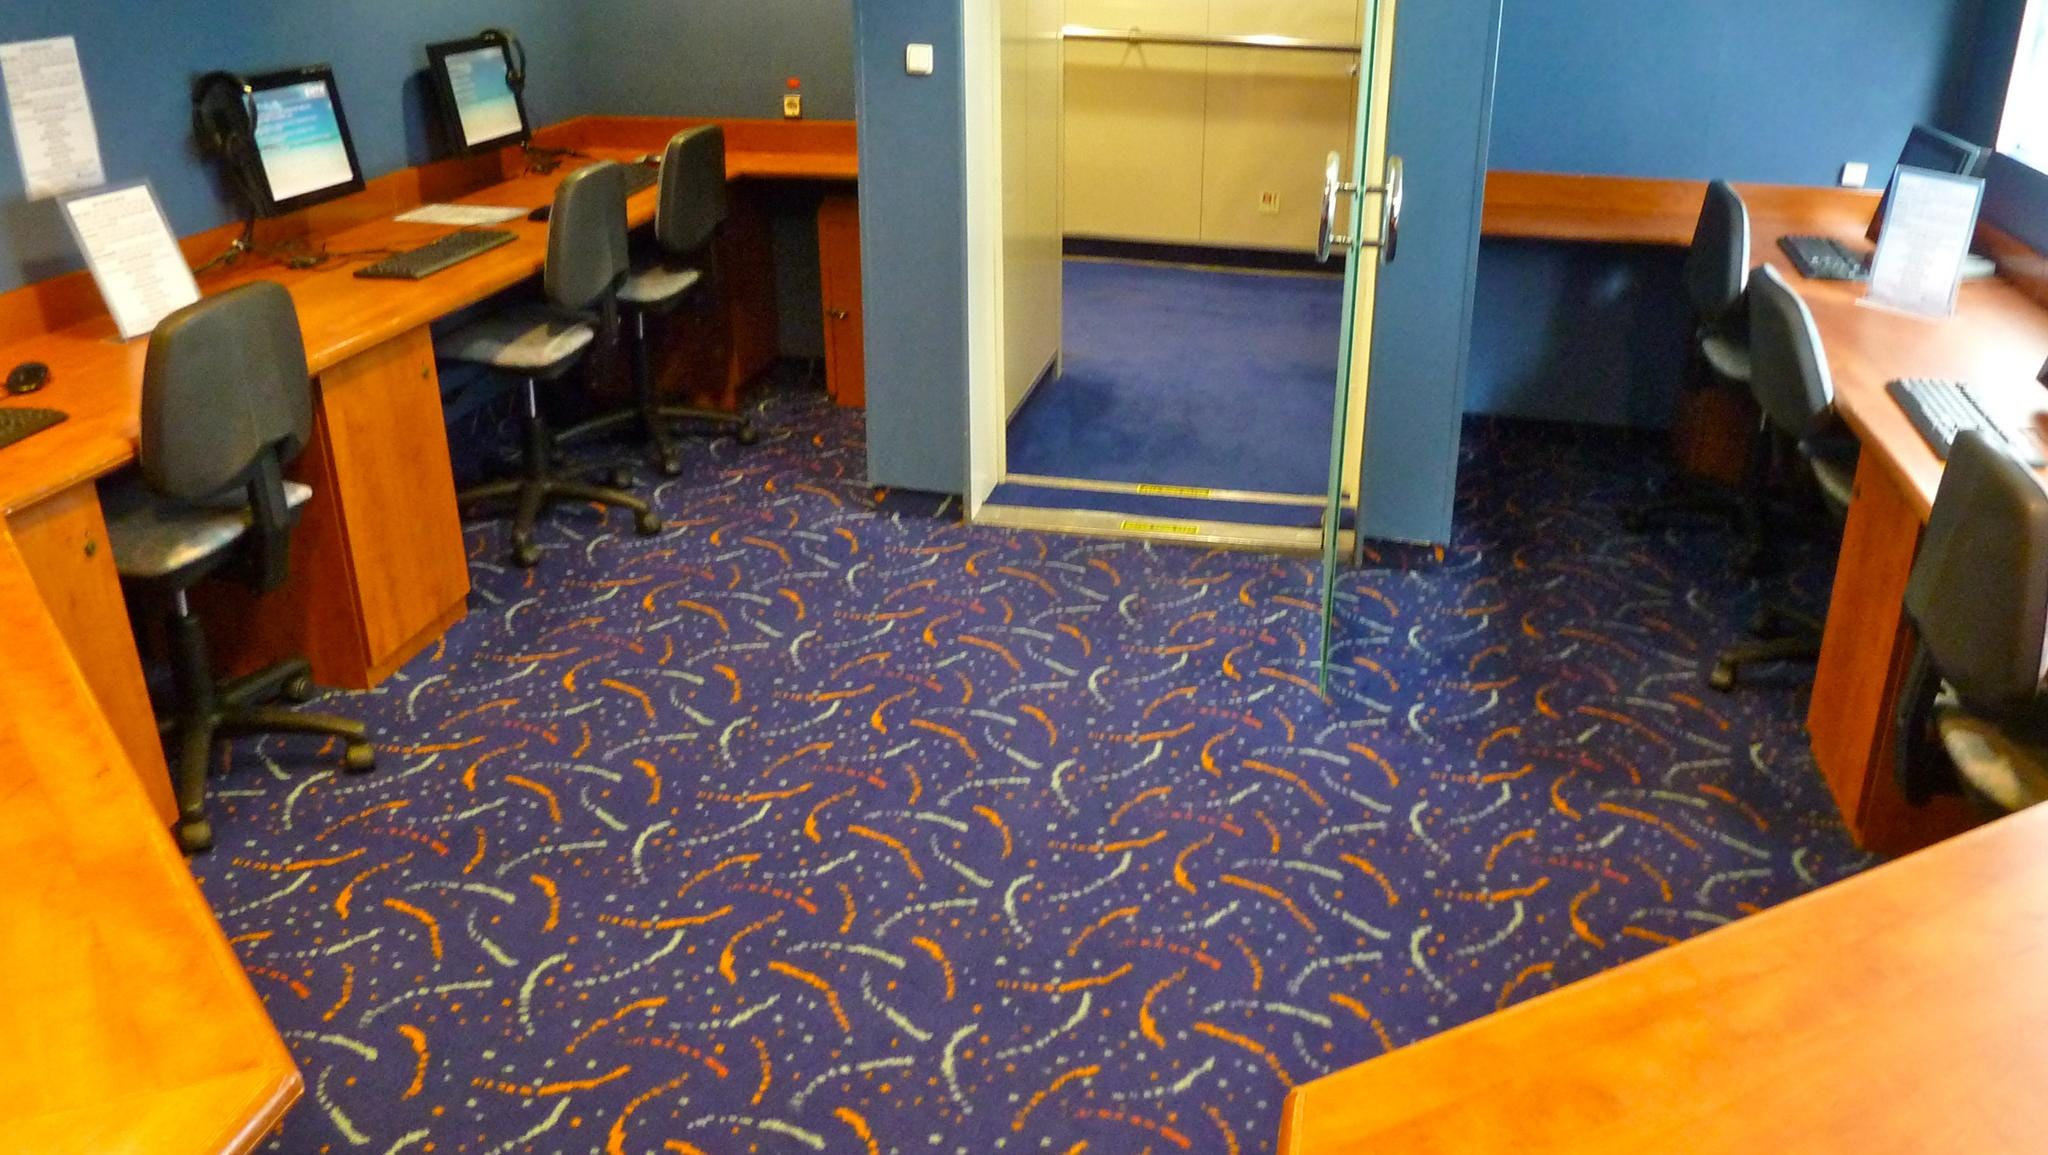 A small internet cafe is located on aft Columbus Deck.